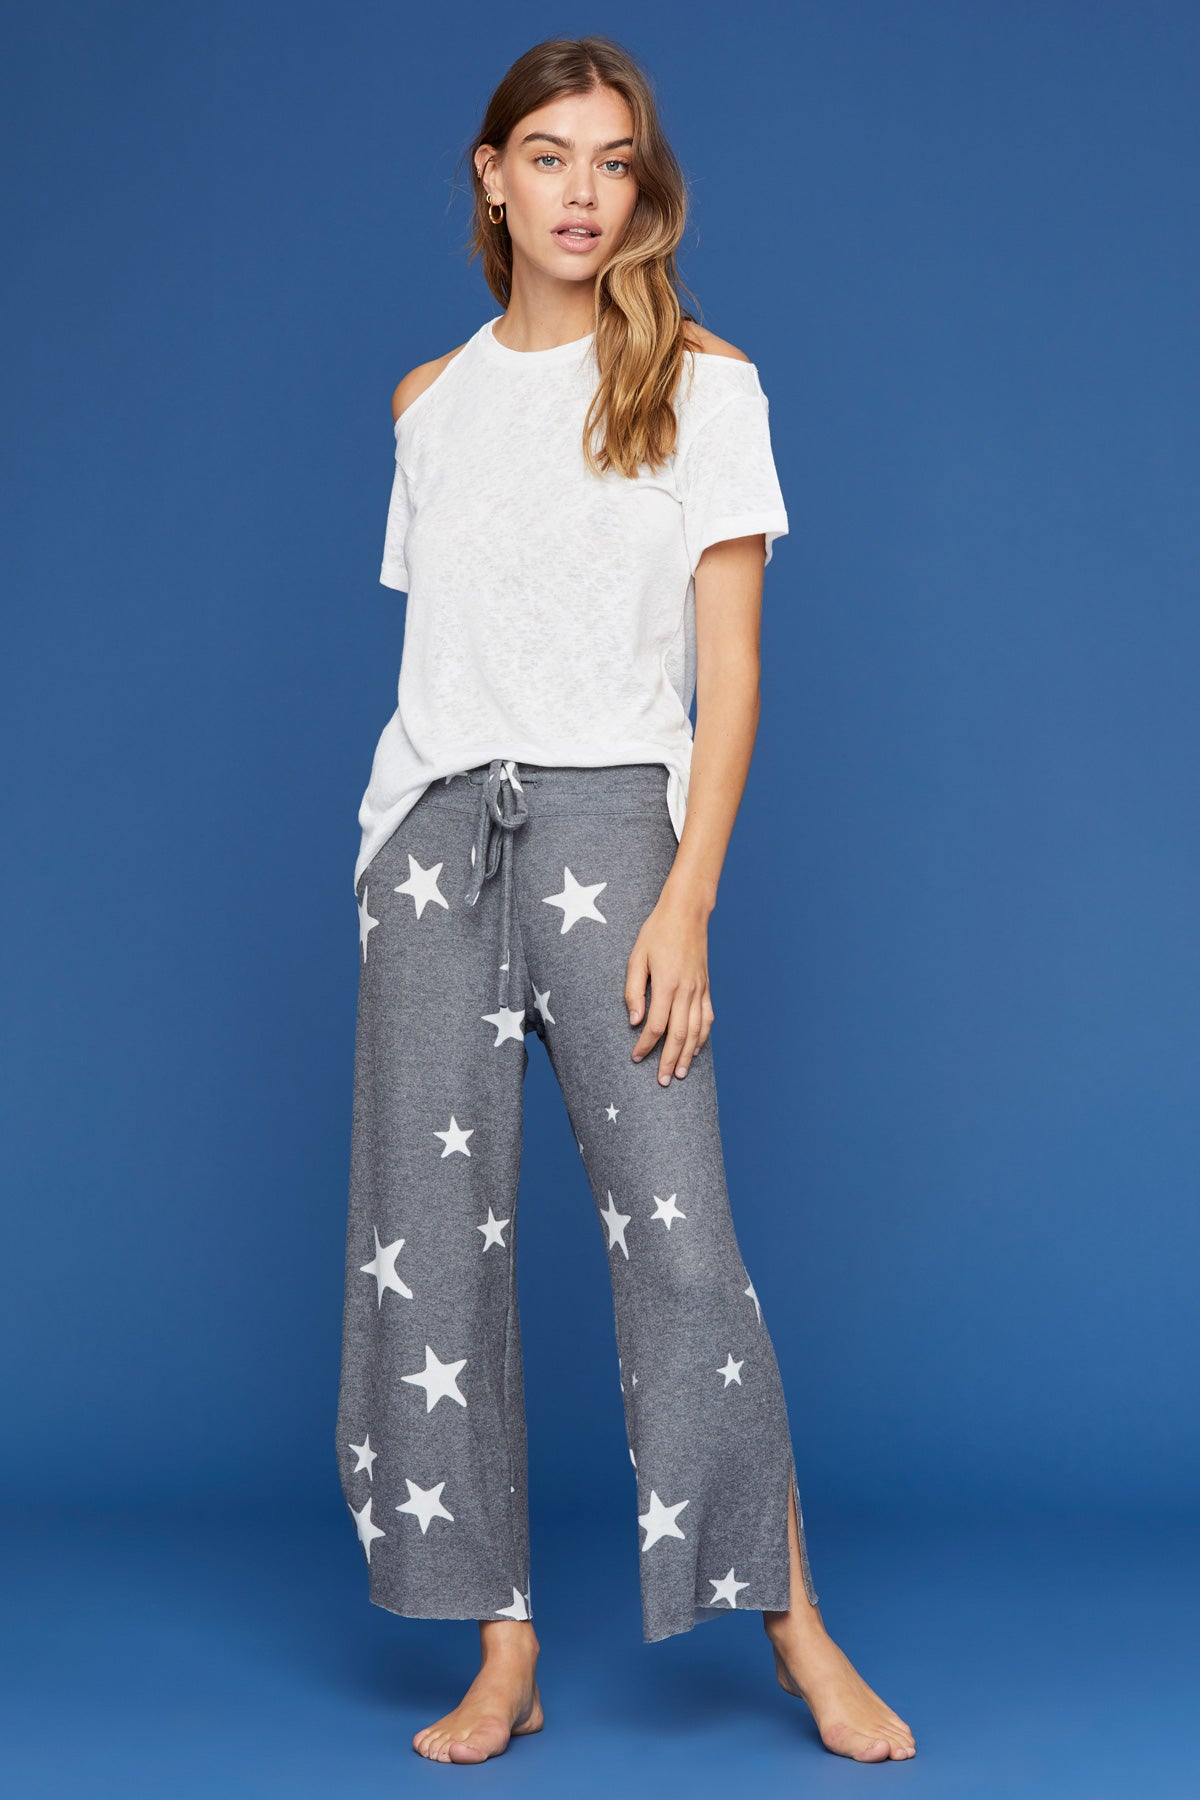 3748bac0a LNA Clothing – LNA Brushed Kismet Pant in Grey and White Star Print